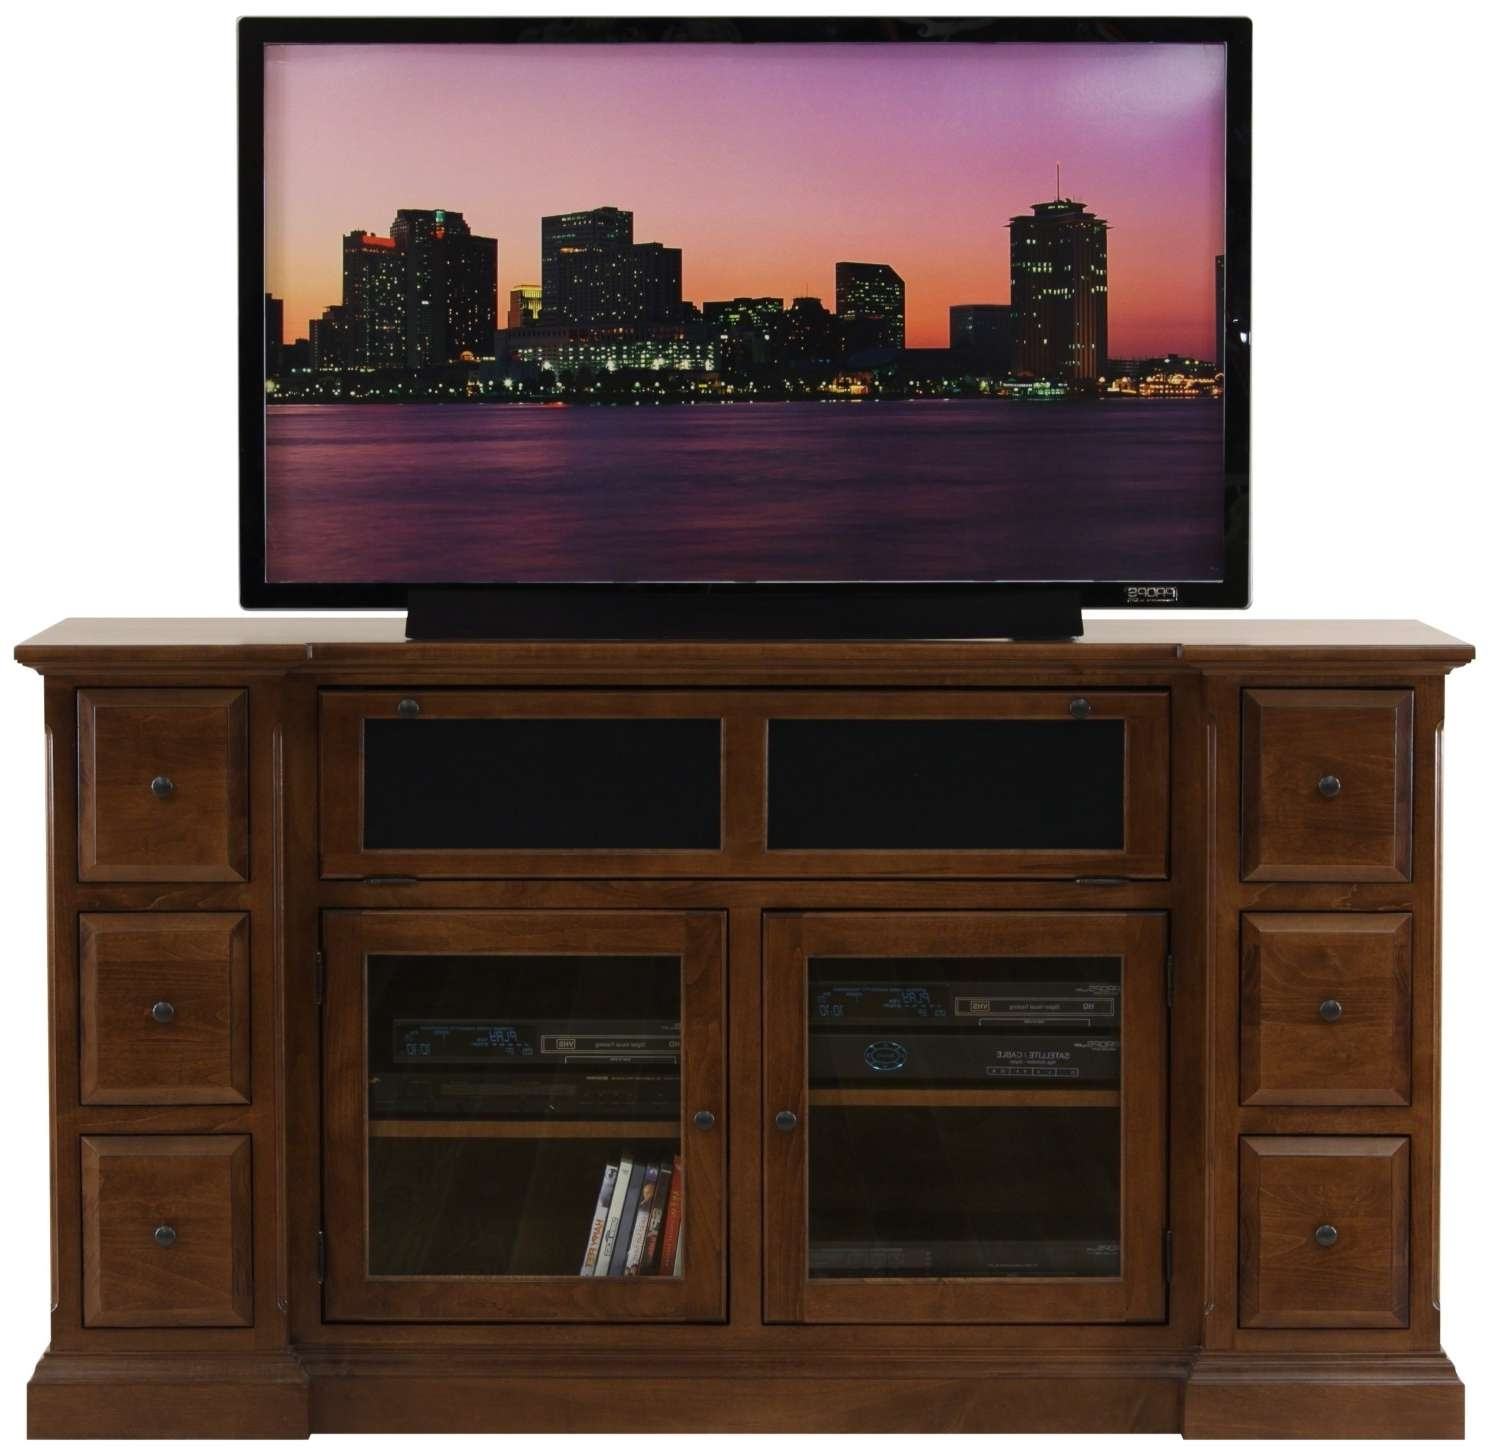 Tv Furniture Stands Cabinets 42 With Tv Furniture Stands Cabinets Pertaining To Tv Stands Cabinets (View 8 of 15)